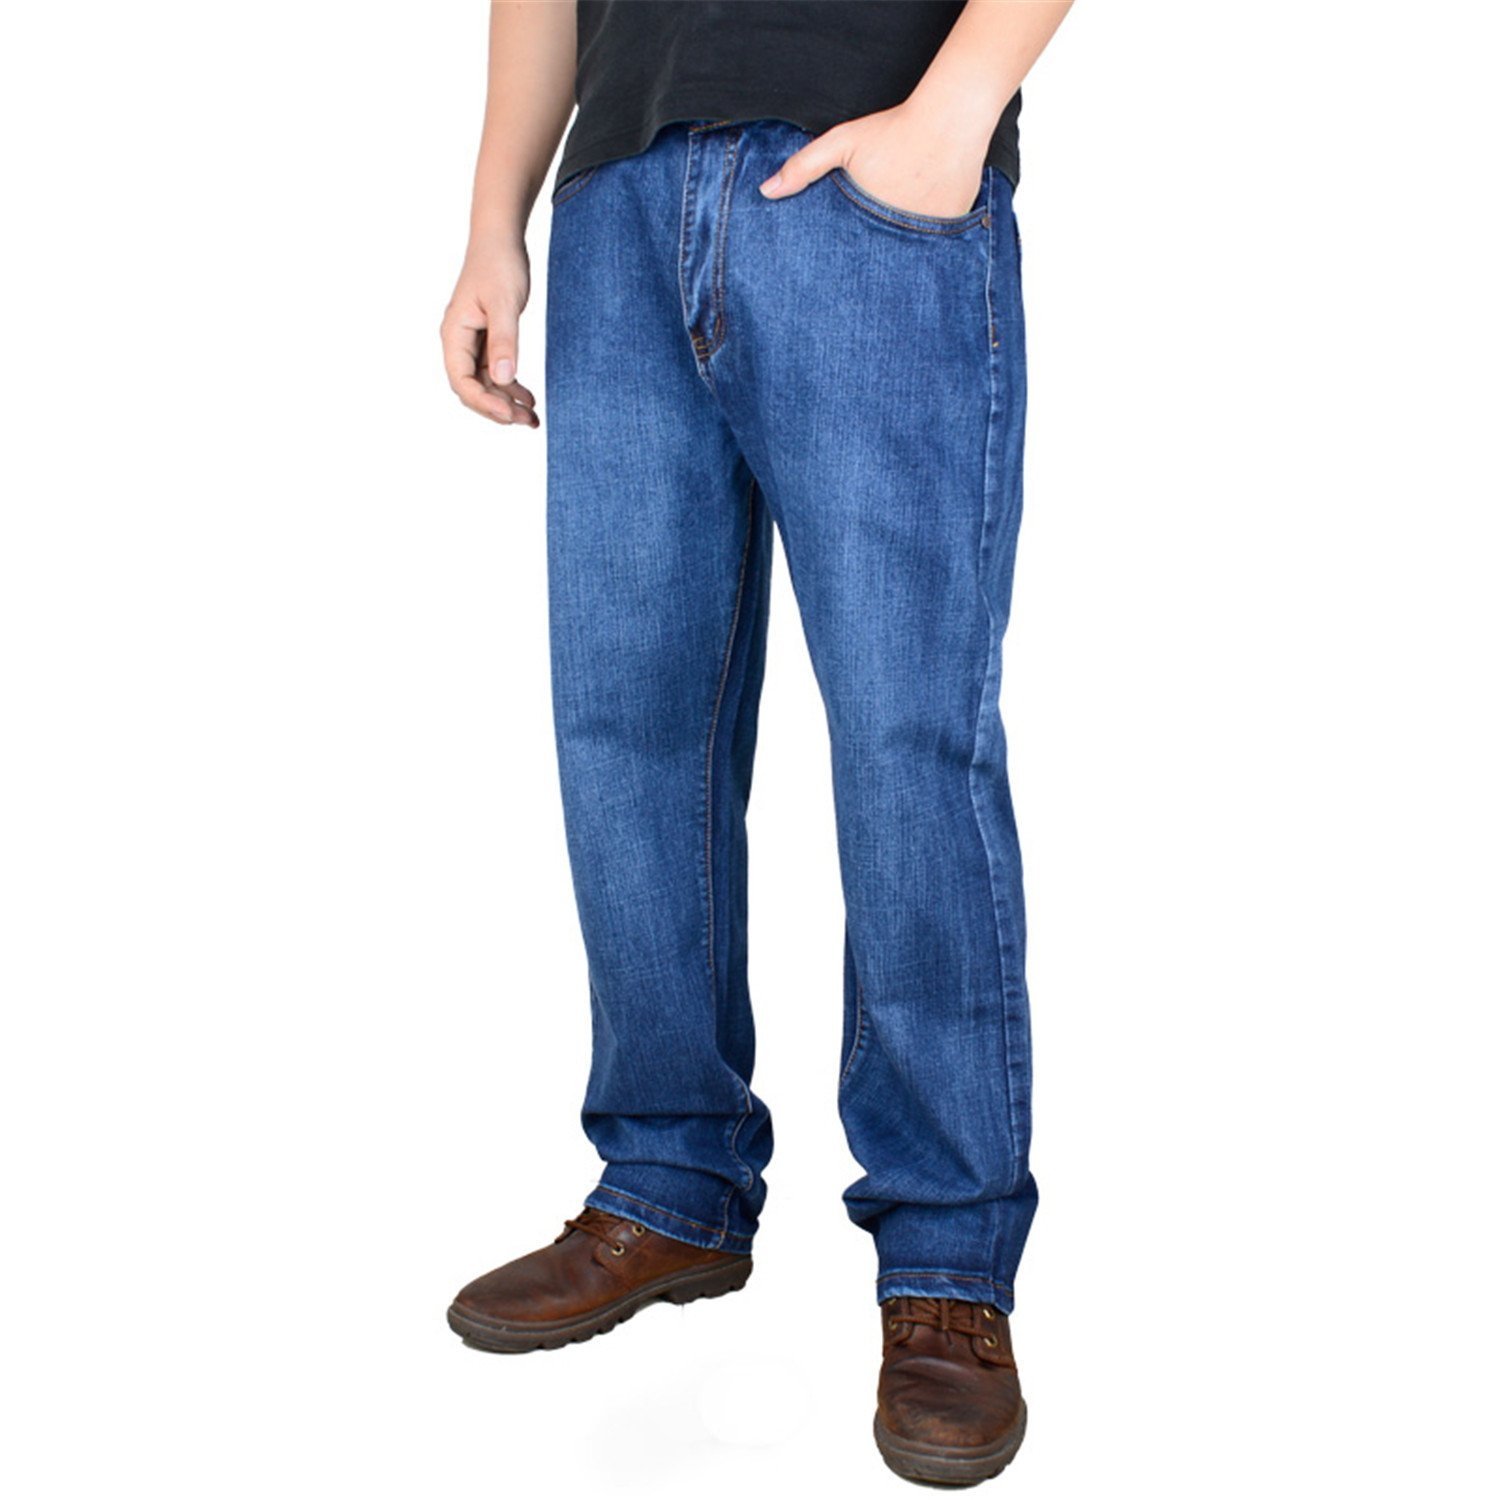 Karl Conner Men Plus Size Pants 38 40 42 44 46 48 50 52 High Stretch Big and Tall Large Trouser Jeans